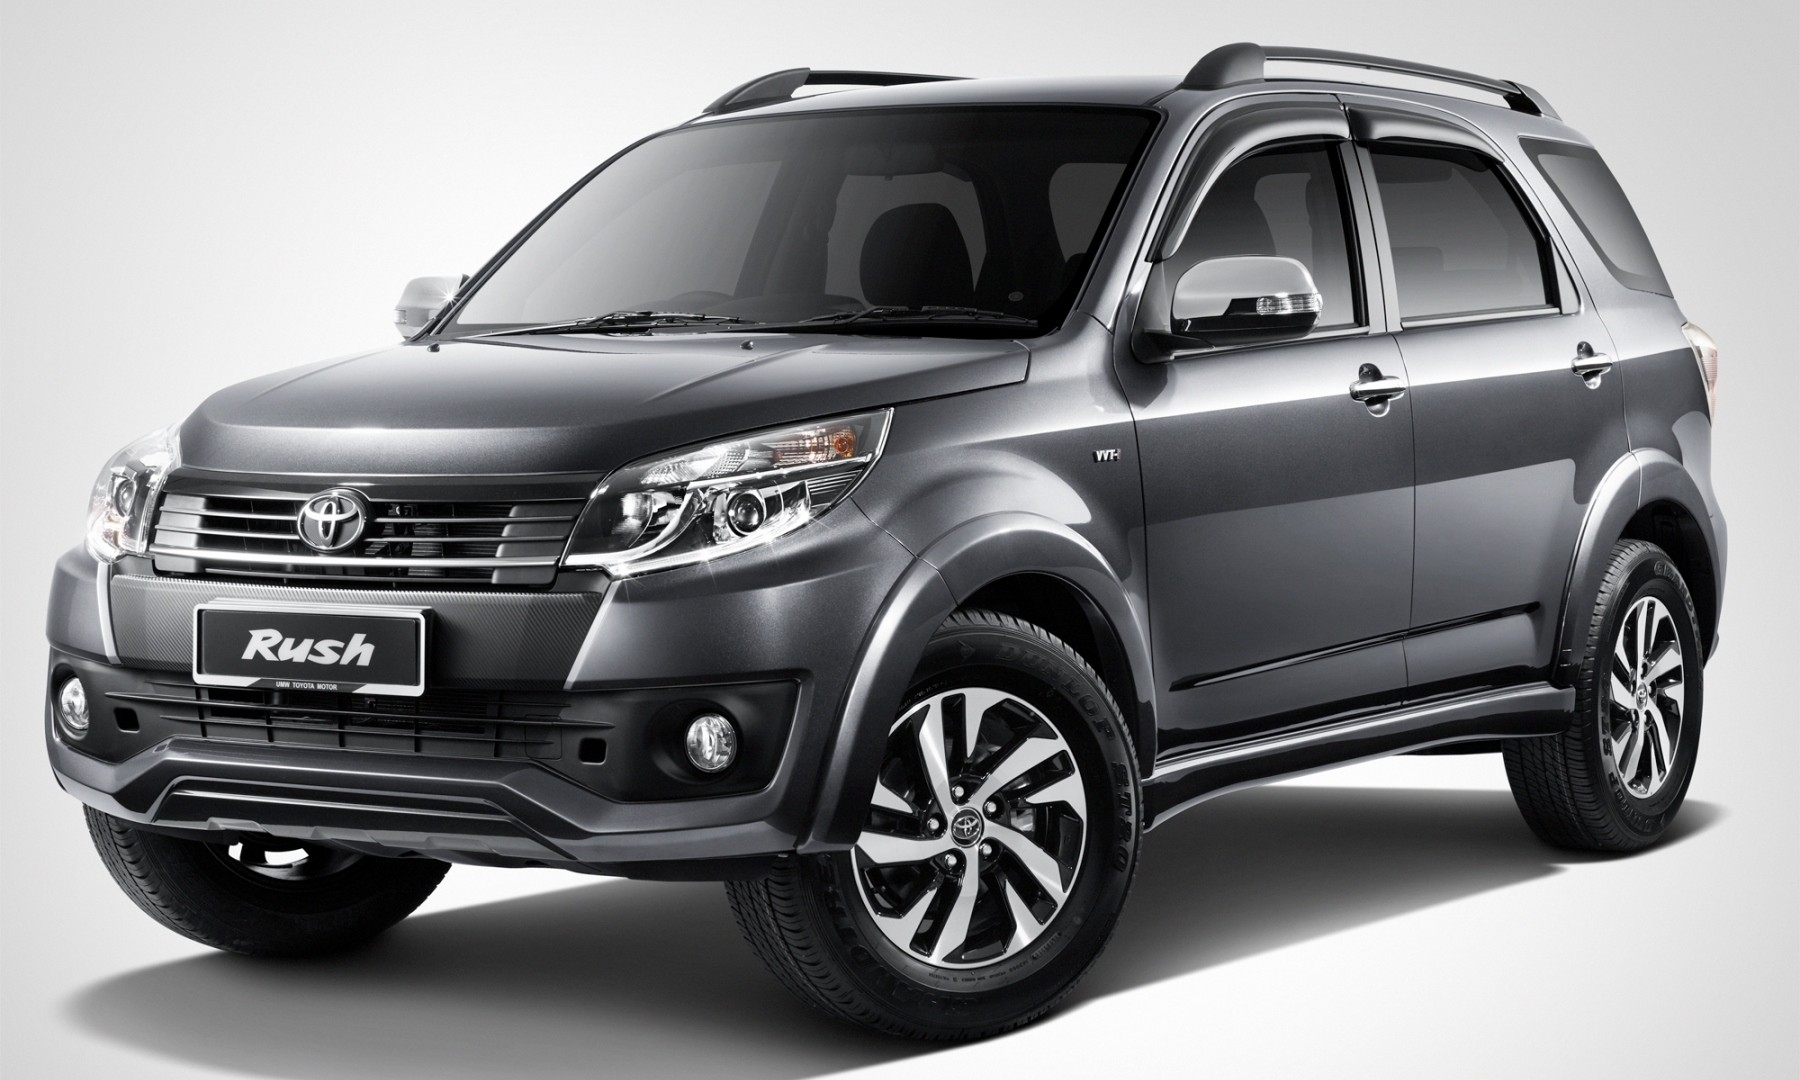 Toyota Rush Images >> 2015 Toyota Rush facelift introduced in Malaysia Image 332375